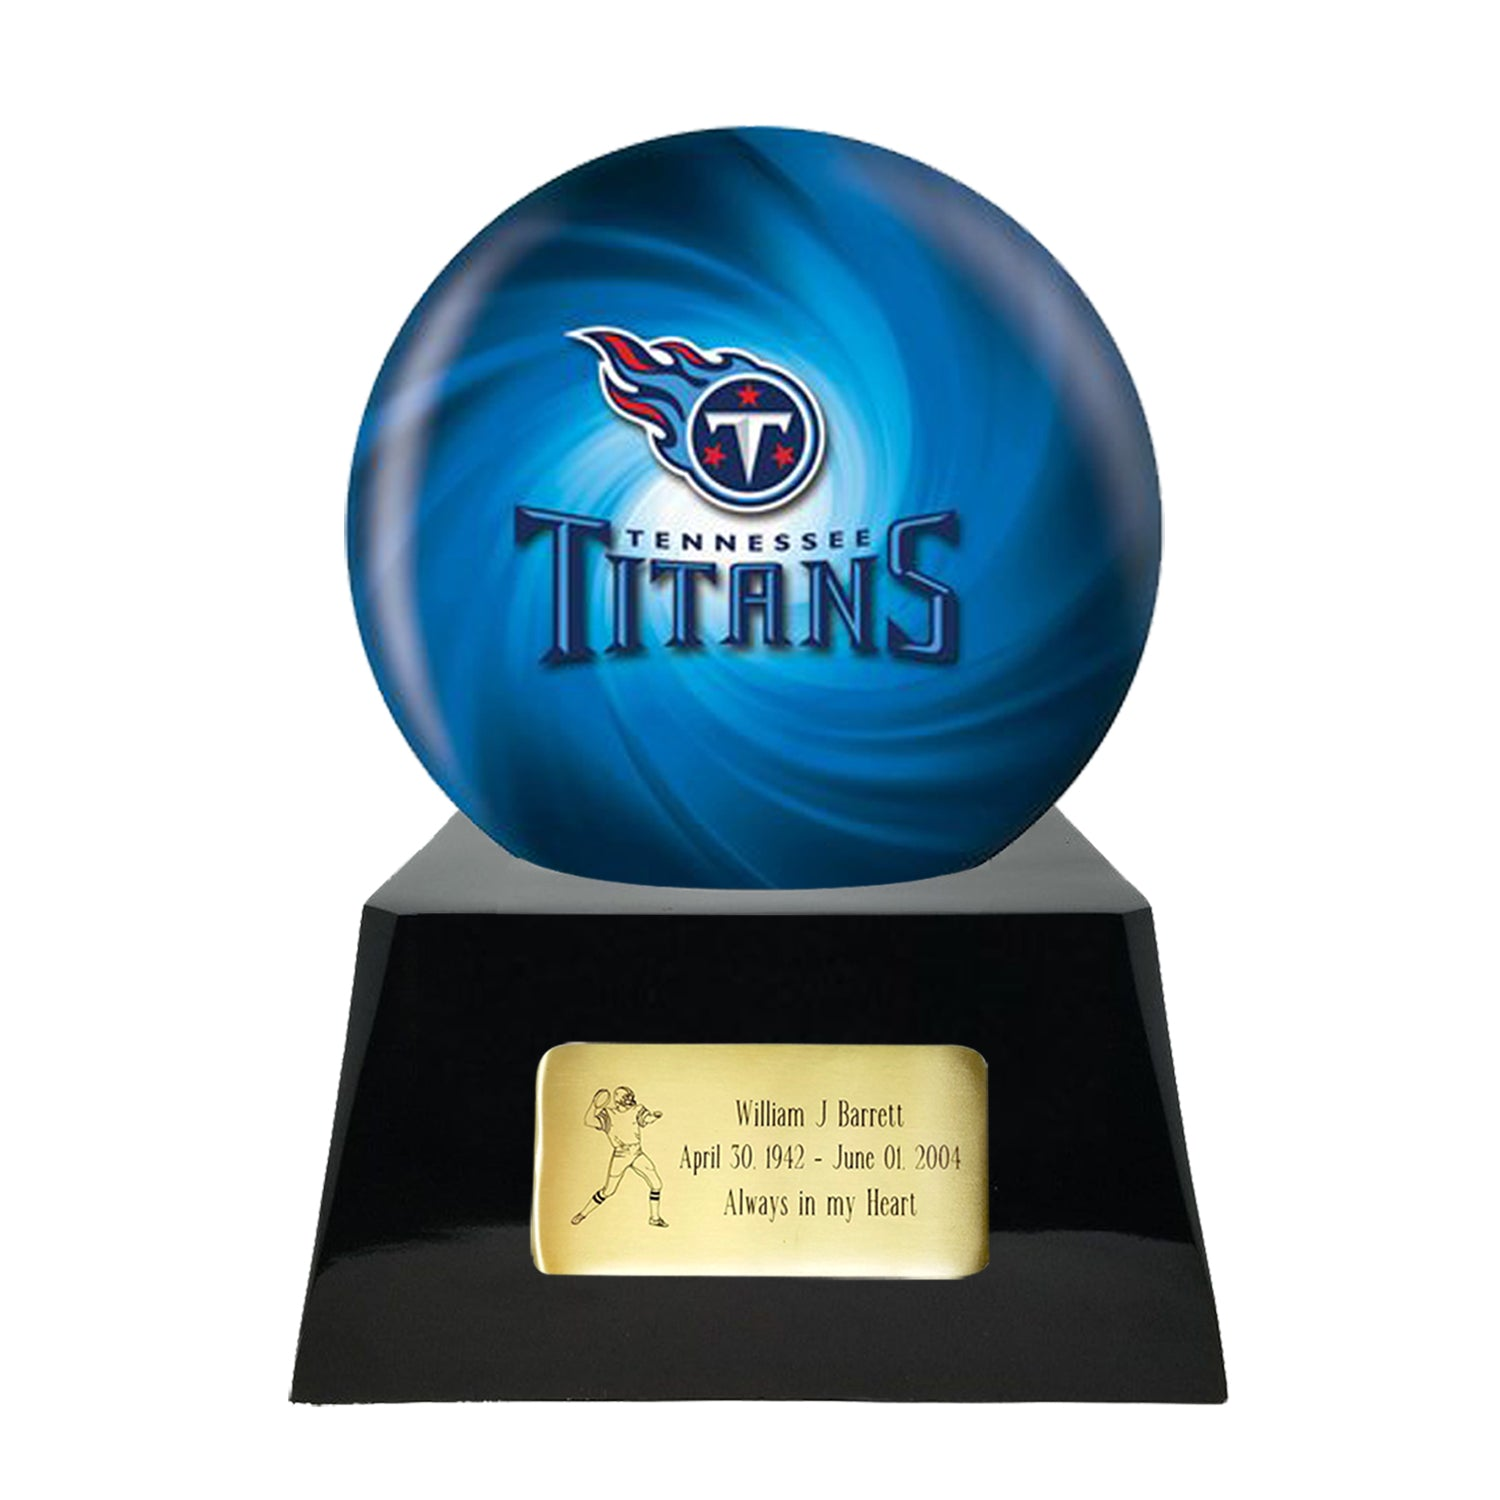 Football Cremation Urn and Tennessee Titans Ball Decor with Custom Metal Plaque